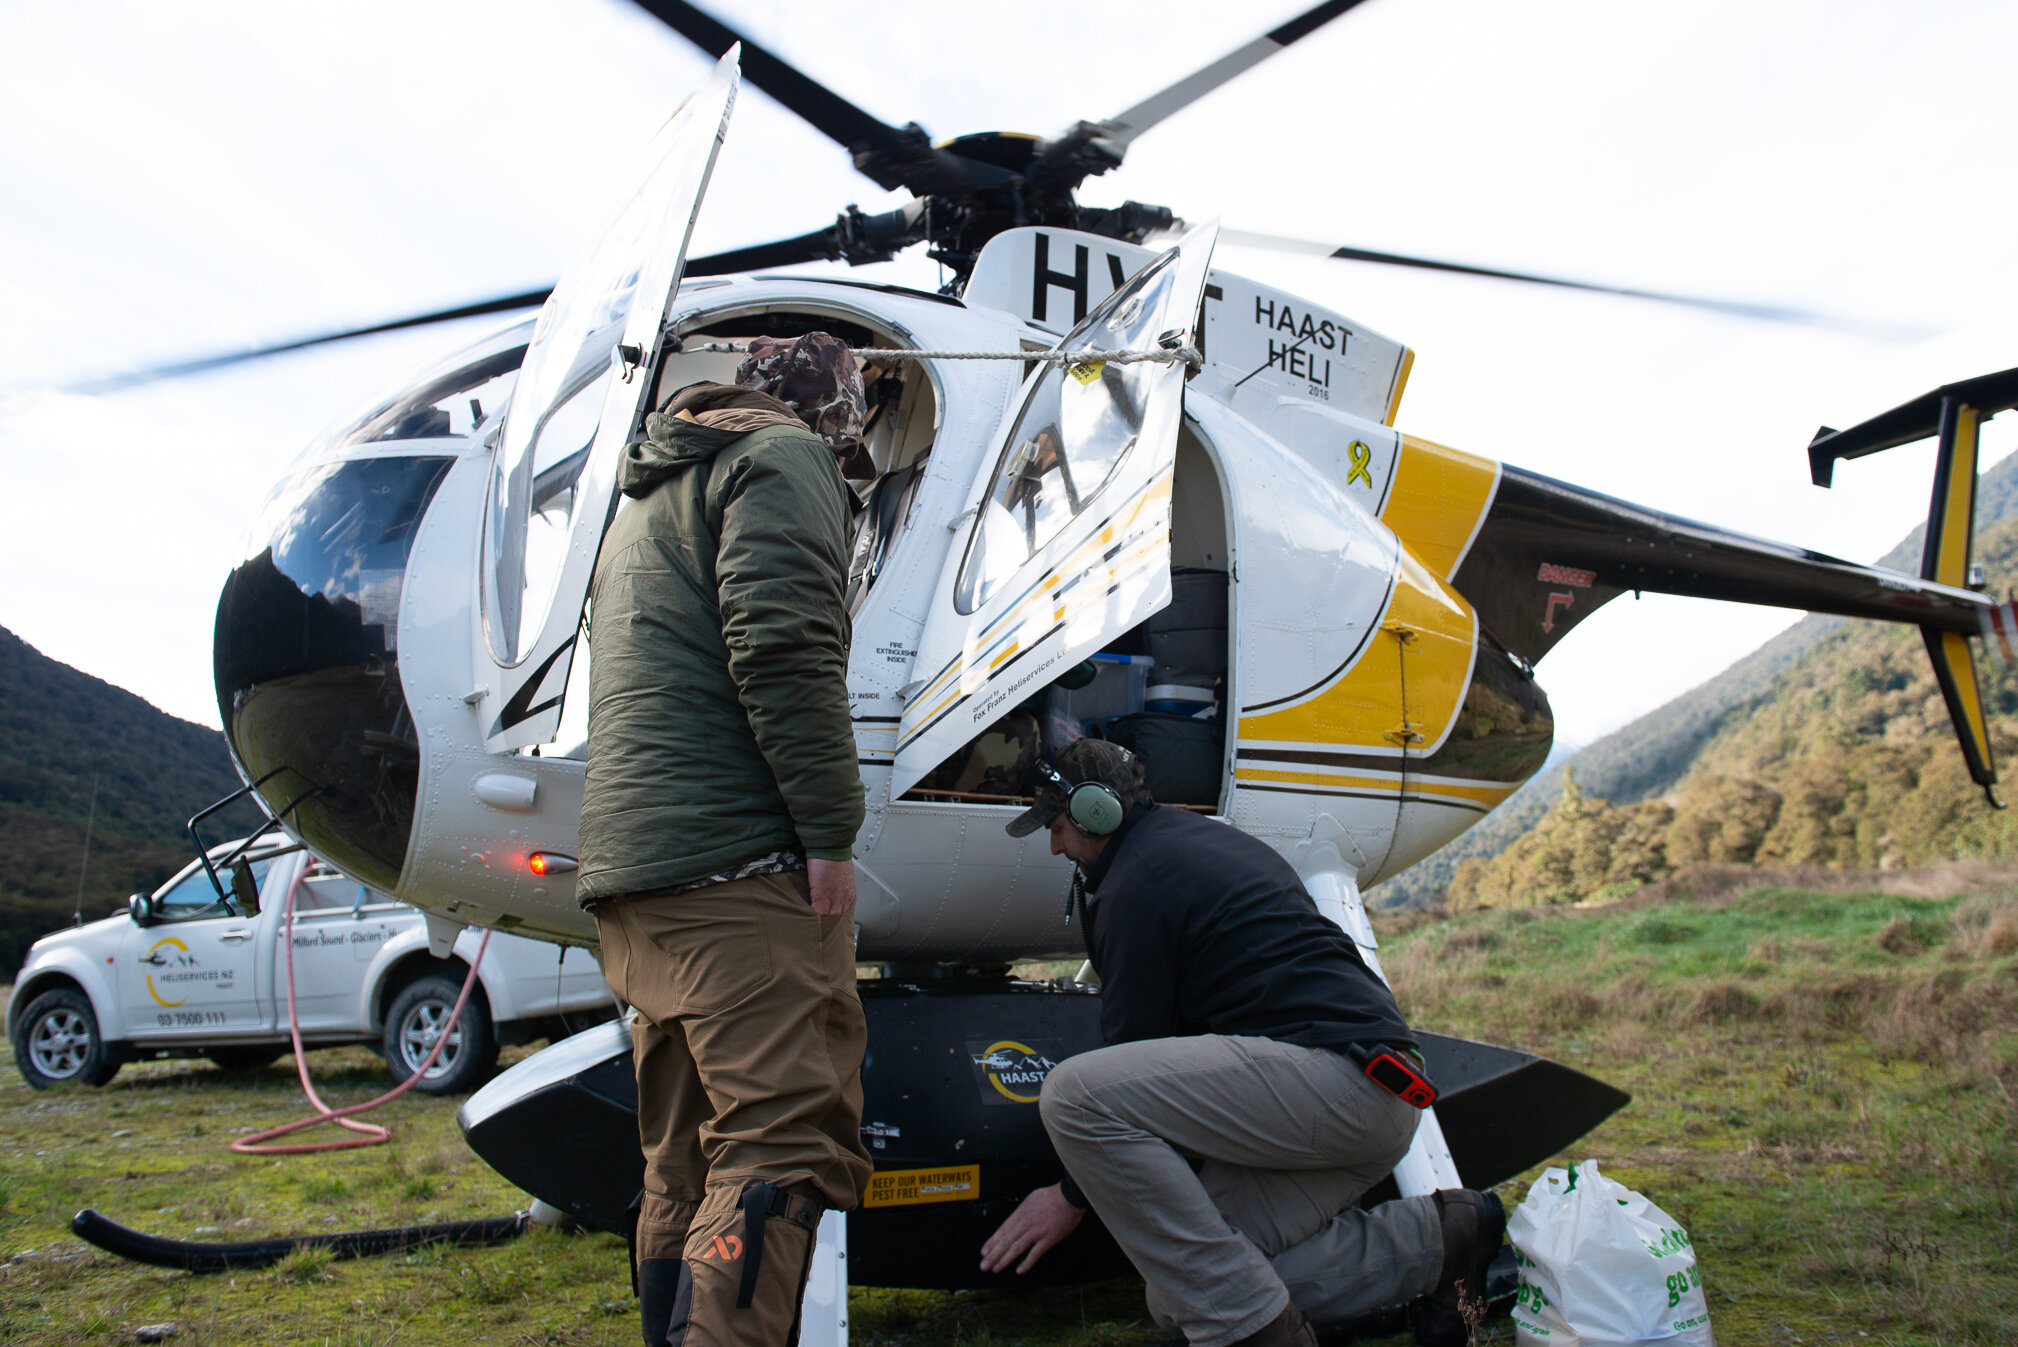 loading the helicopter in westland to hunt tahr Credit - Sean Powell